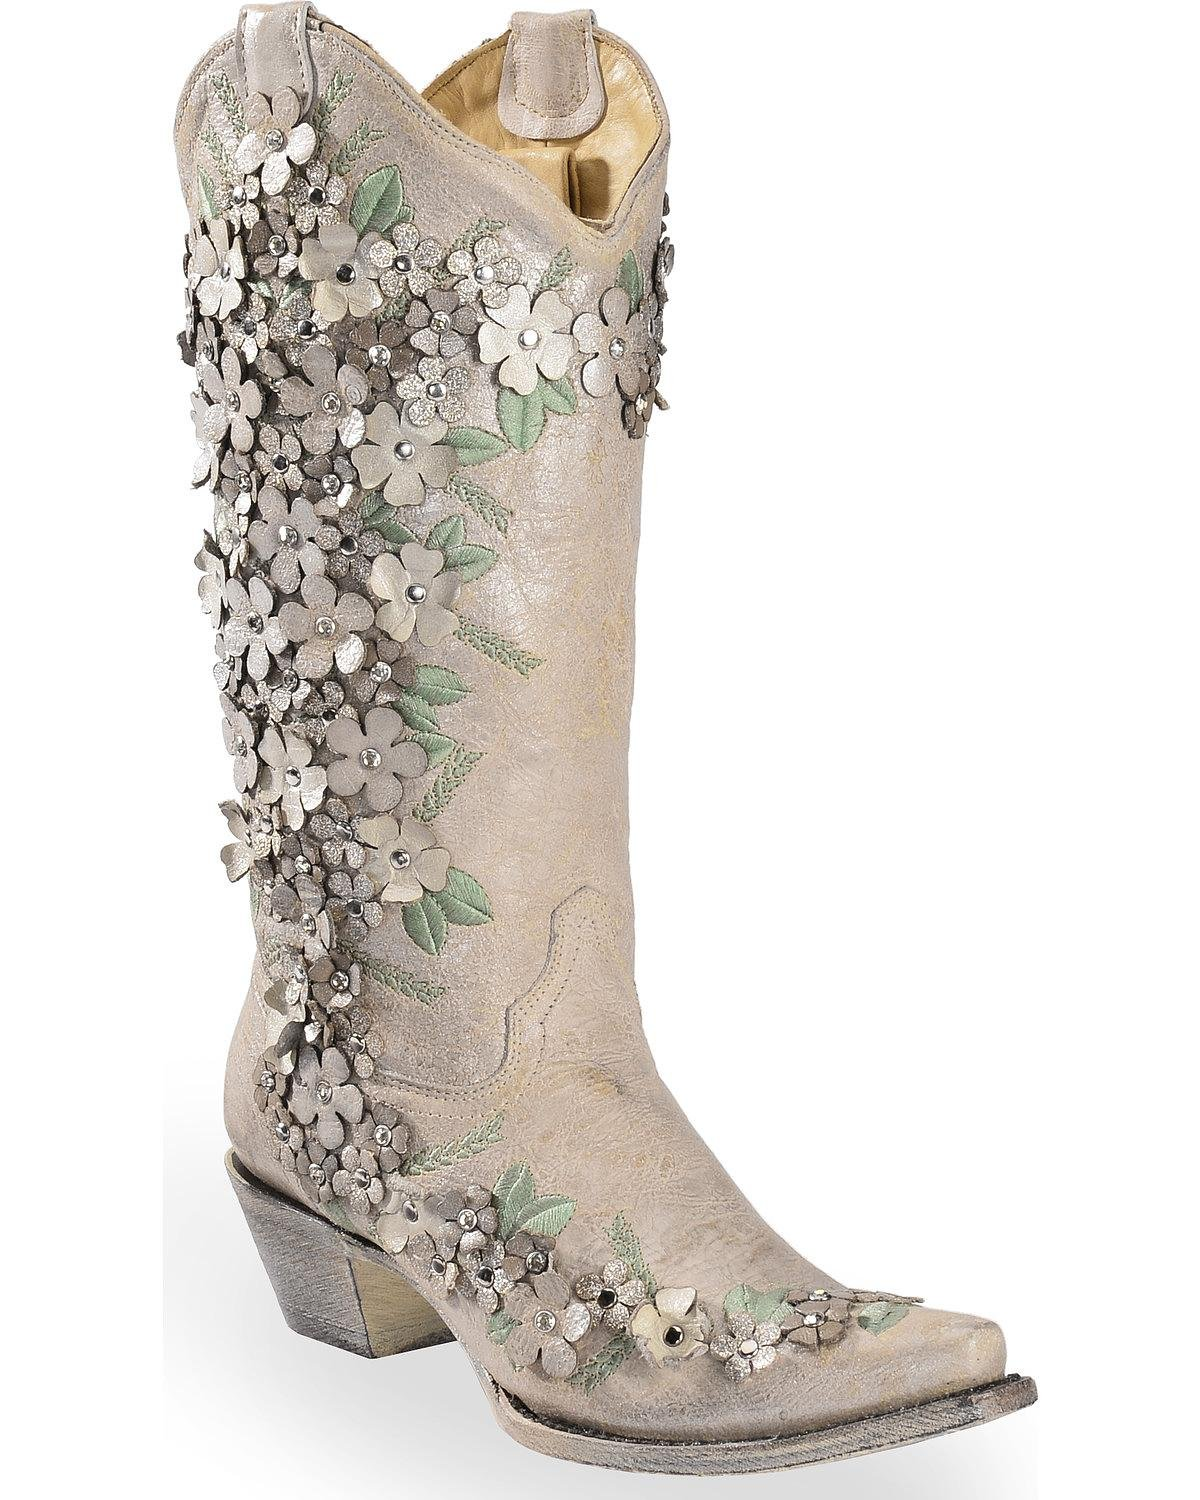 CORRAL Women's White Floral Overlay Embroidered Stud and Crystals Cowgirl Boot White 8.5 M